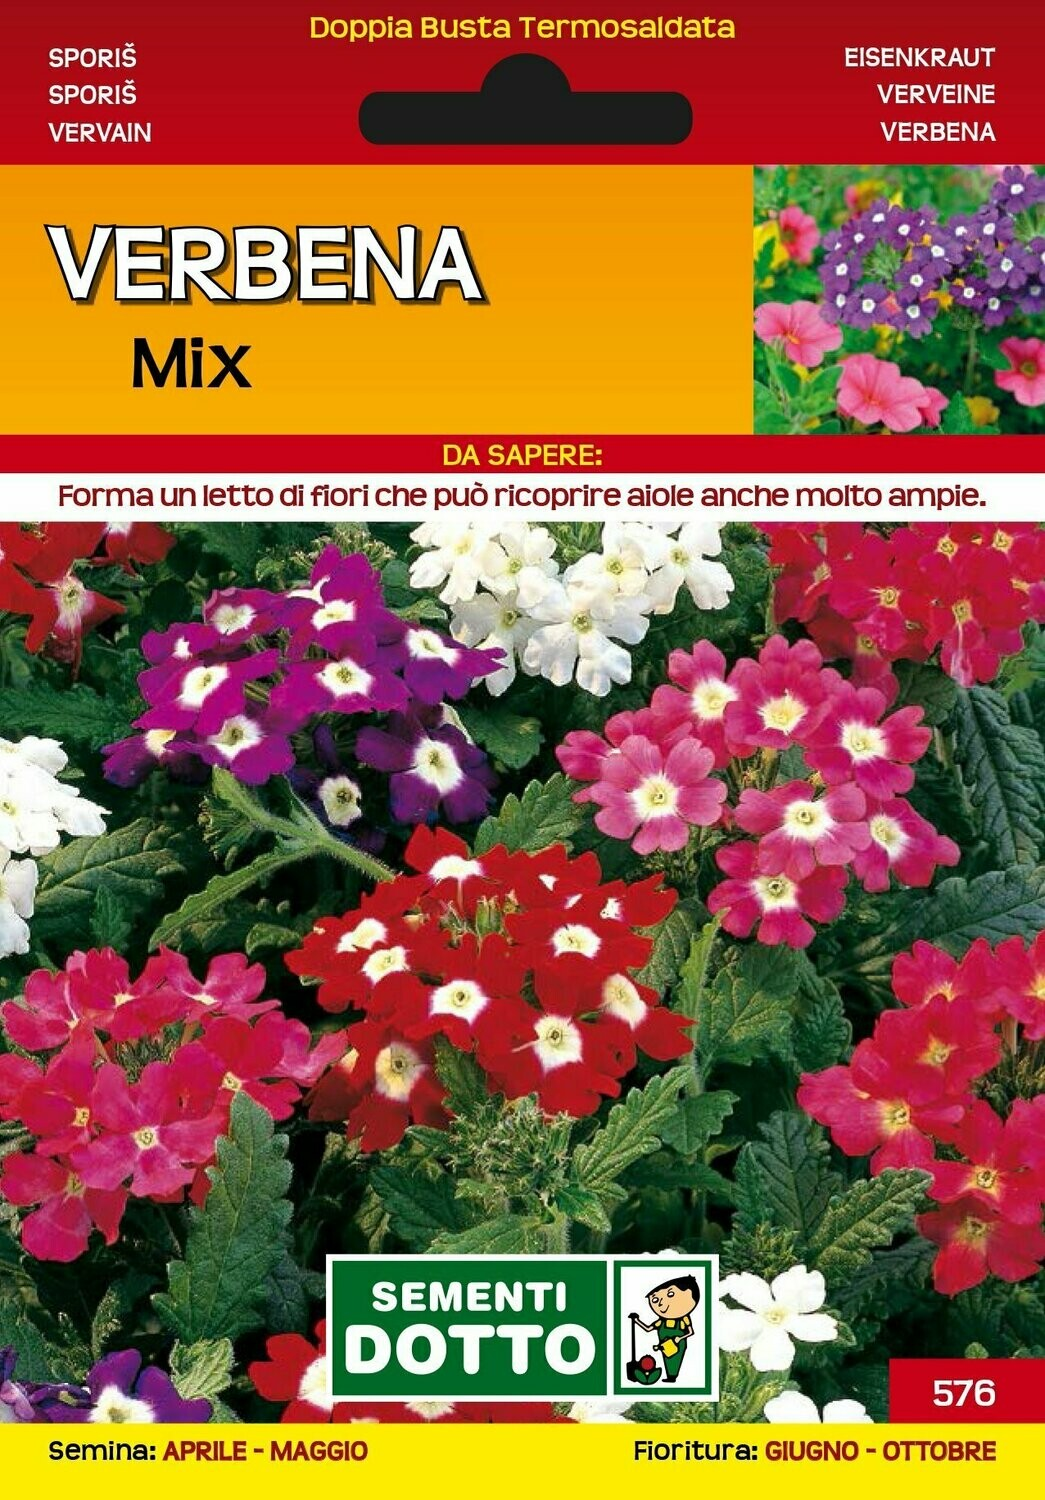 VERBENA MIX BUSTA SEMI